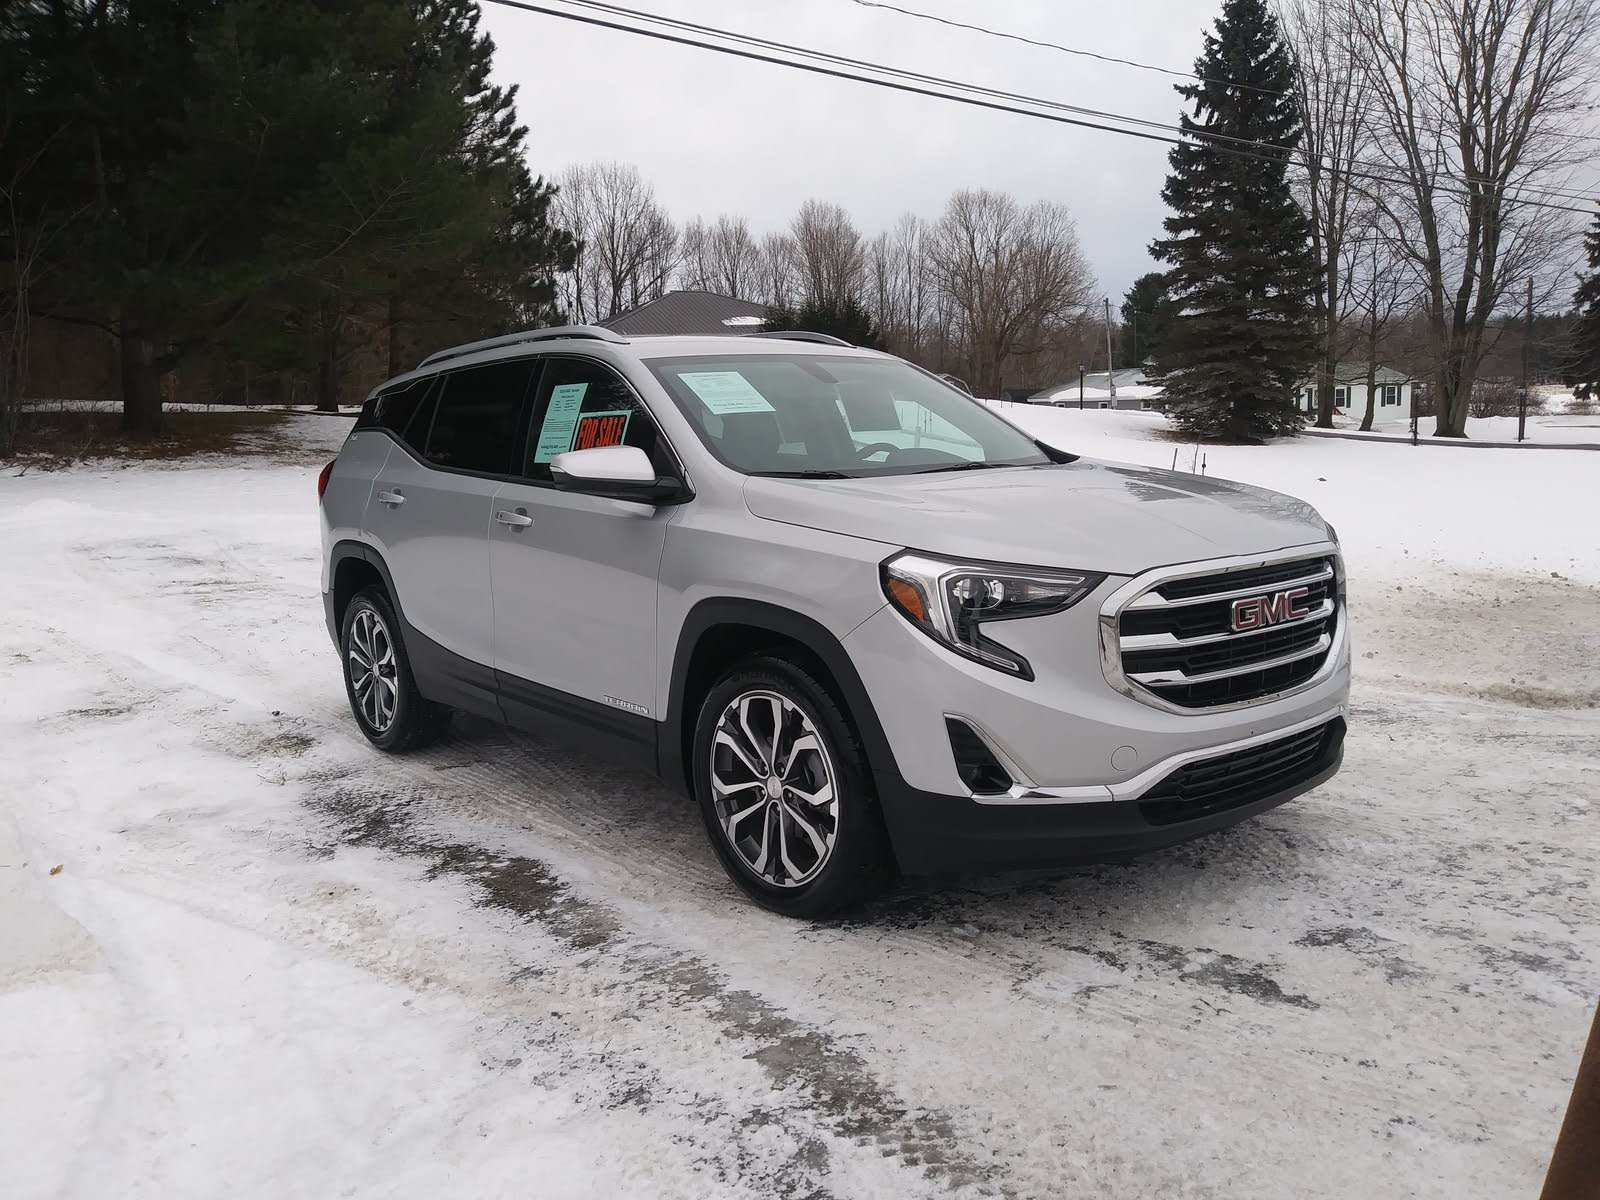 92 Great The Gmc Terrain 2019 White Engine New Concept for The Gmc Terrain 2019 White Engine